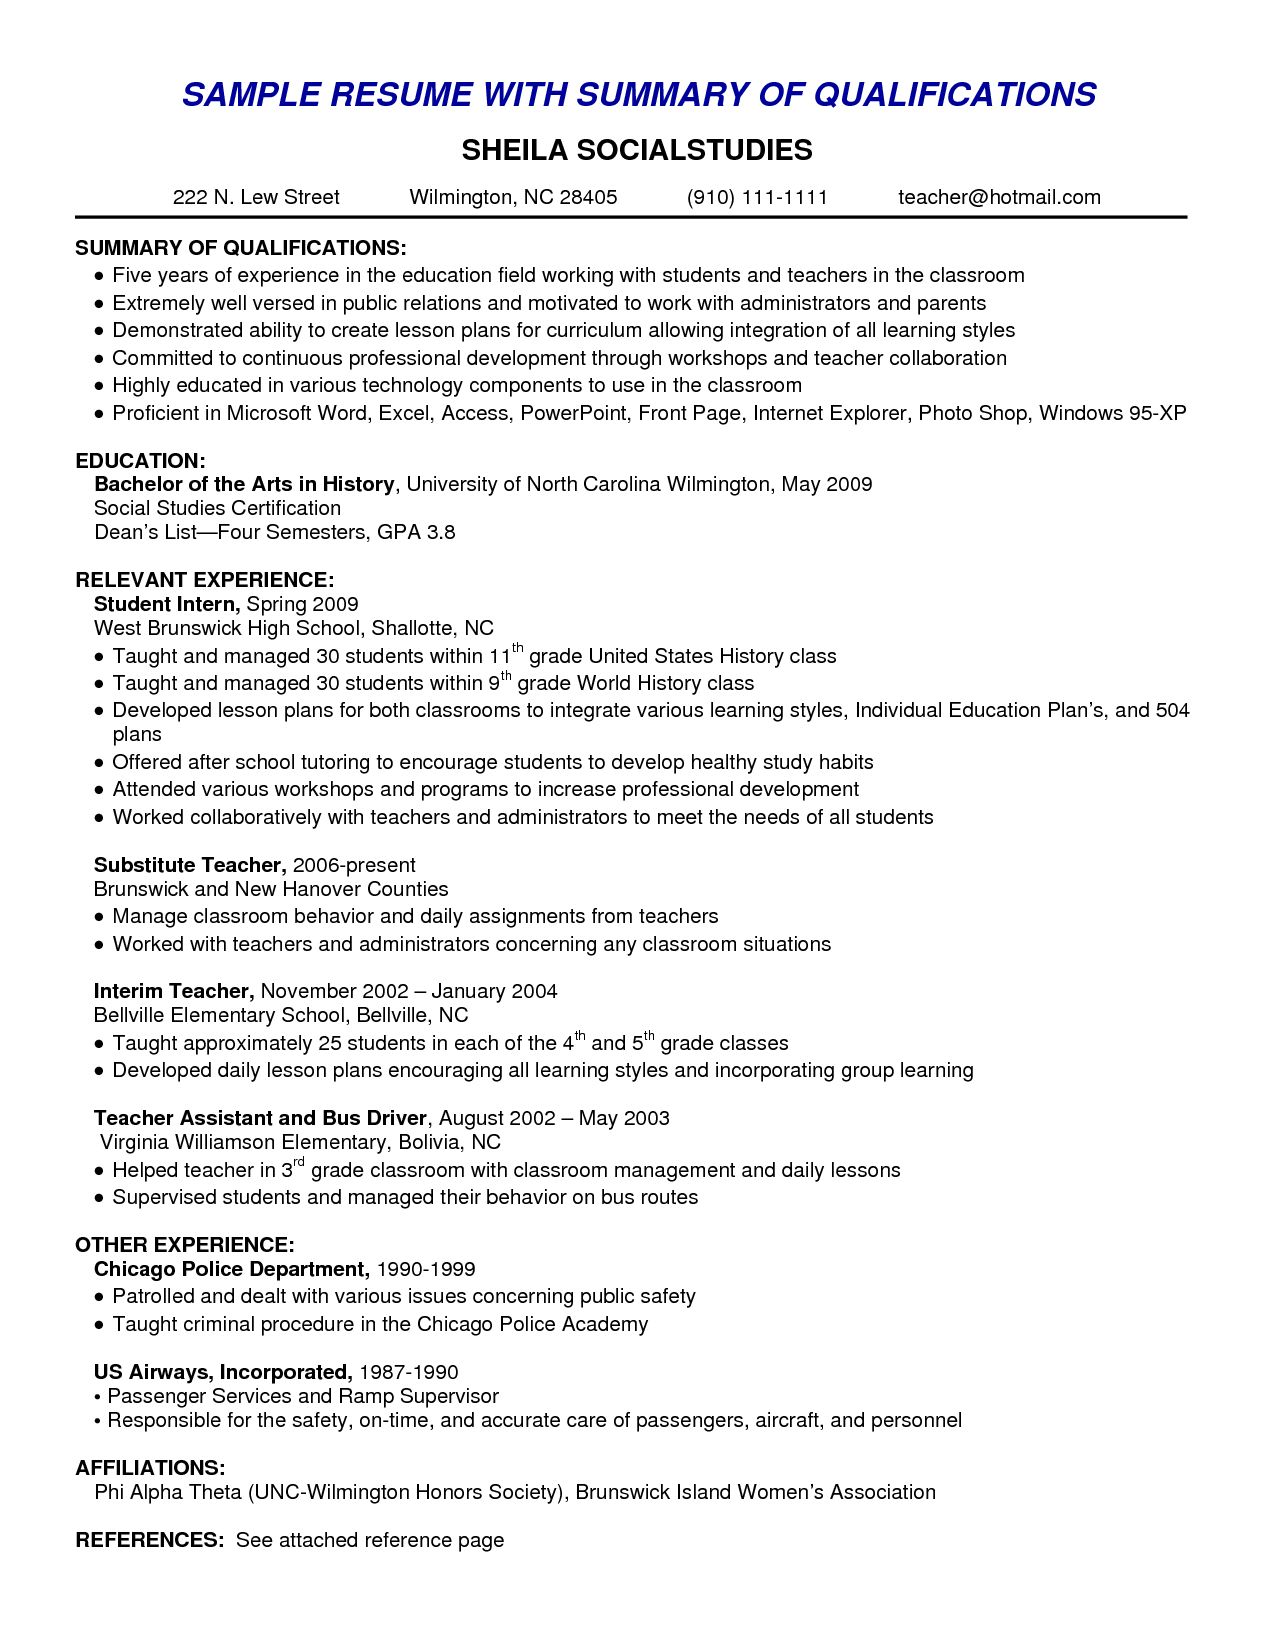 a resume summary is a brief list in just a few sentences in the top of your resume after your